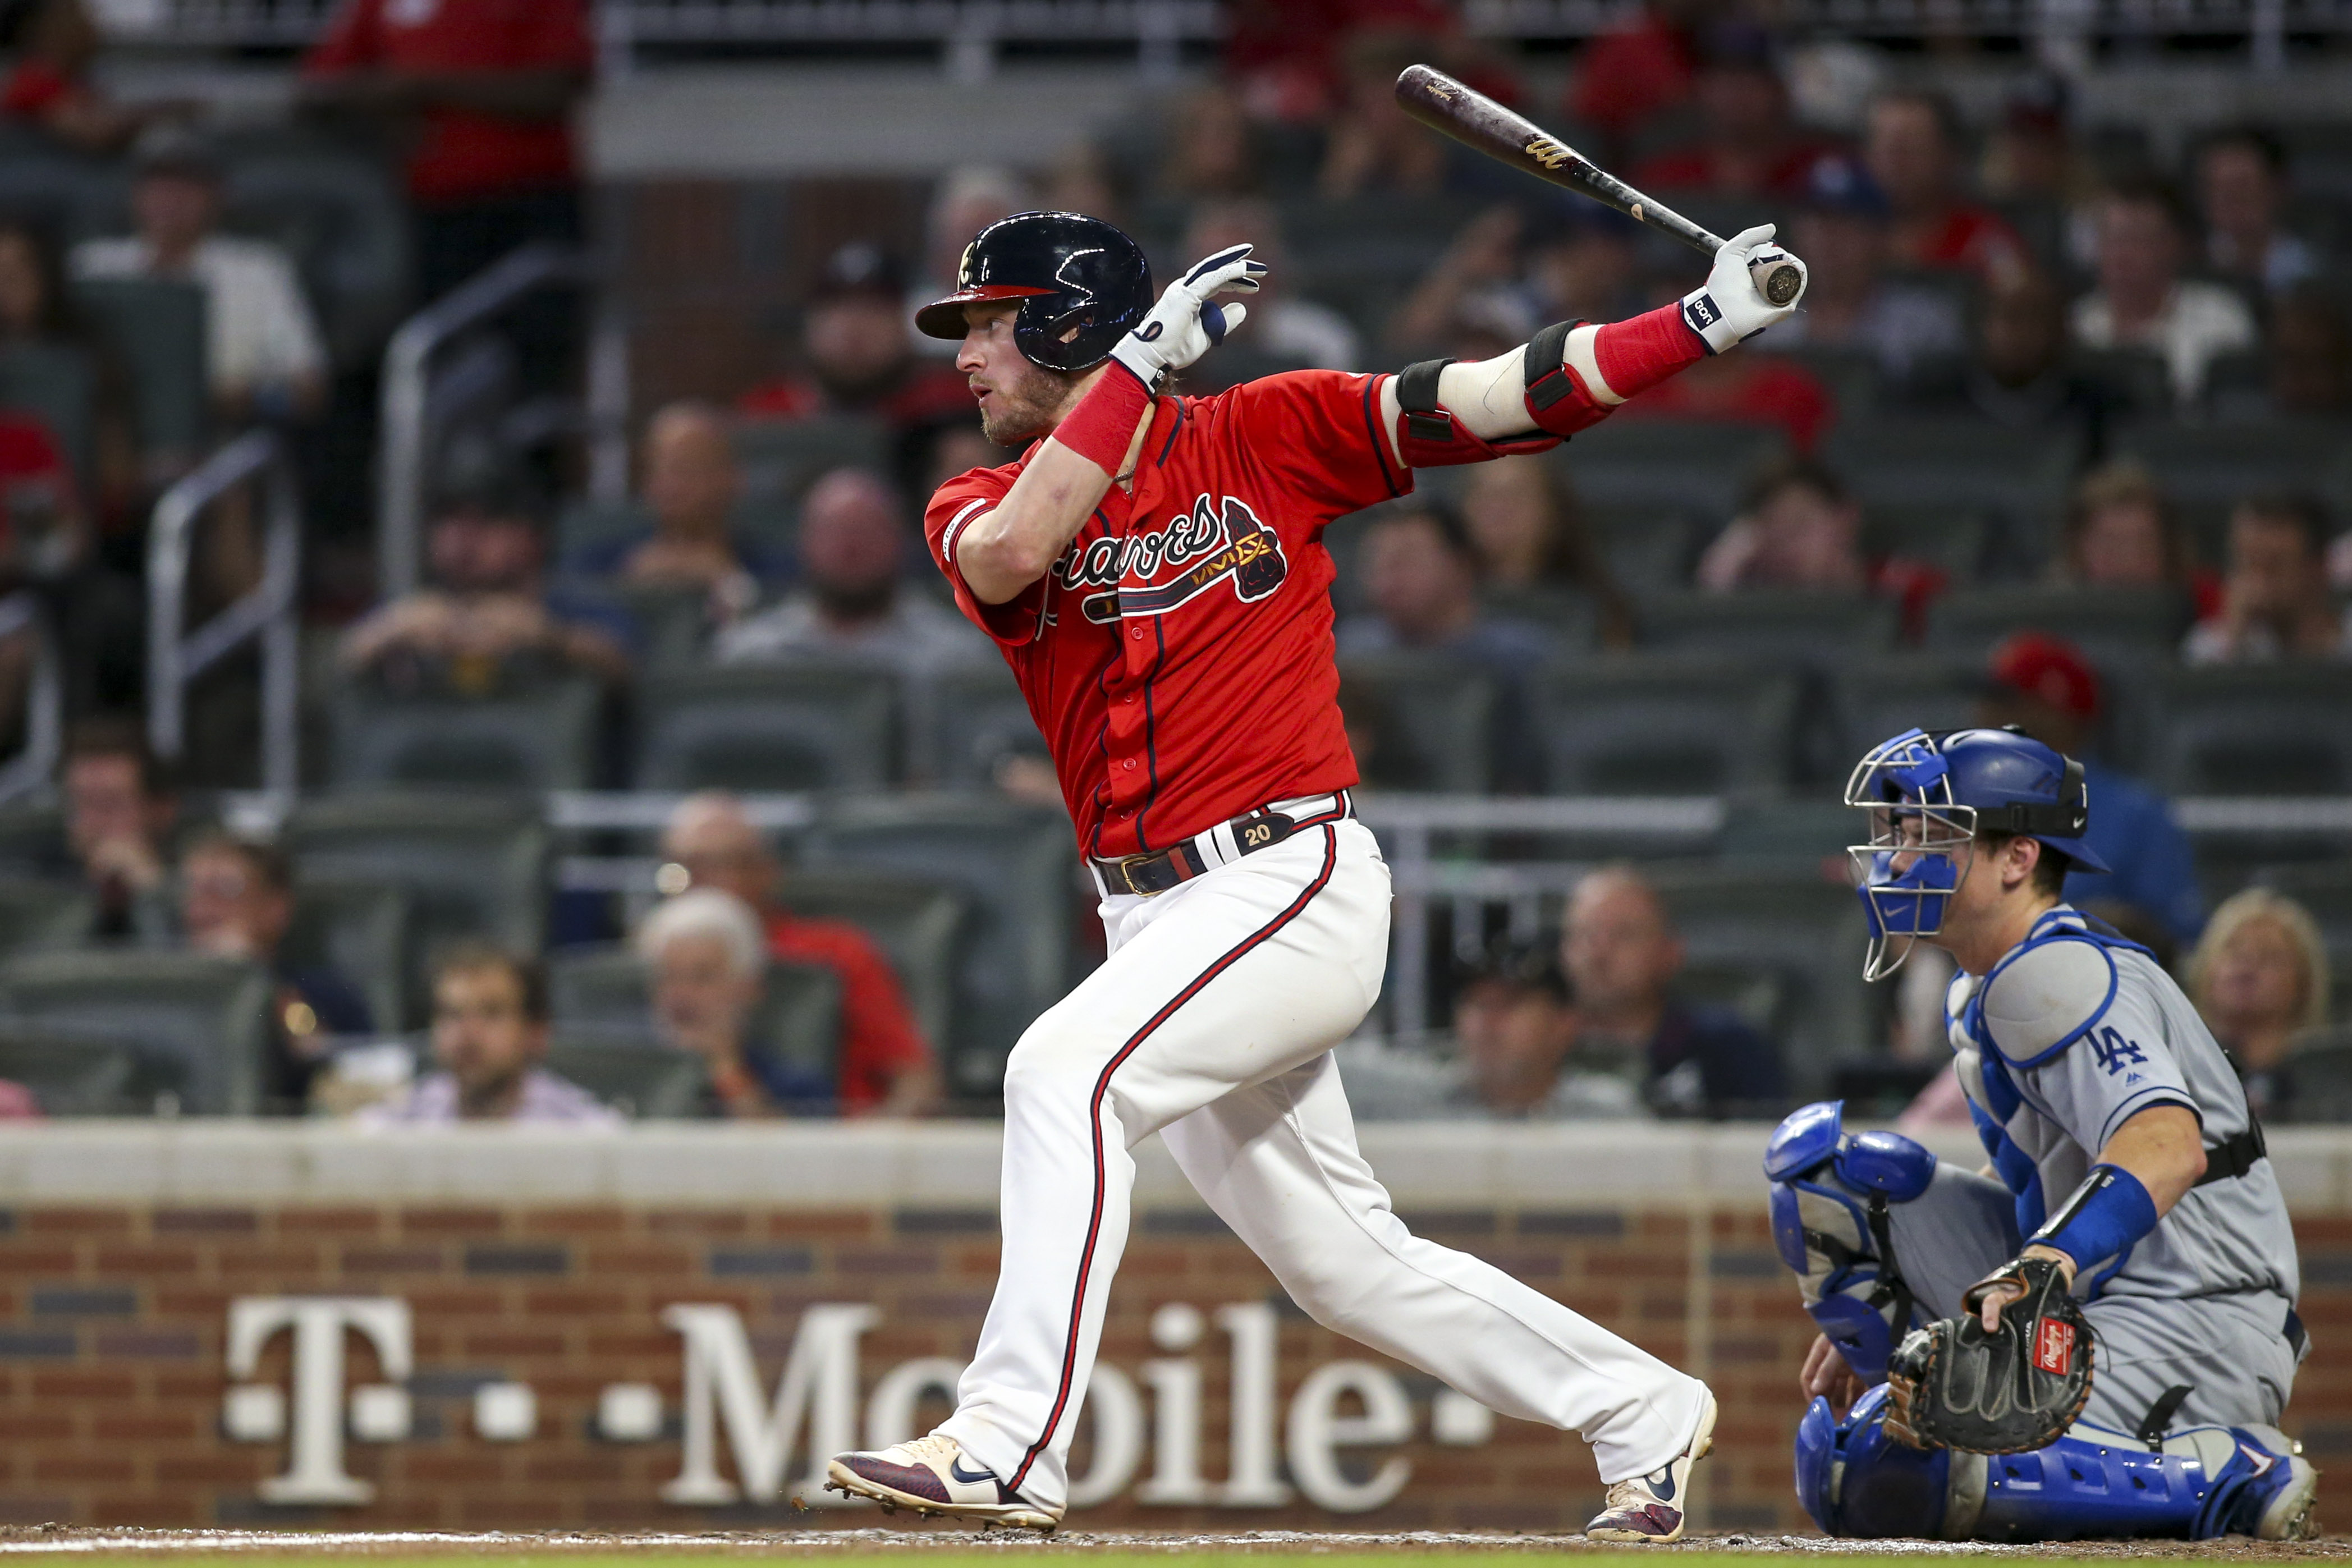 MLB: Los Angeles Dodgers at Atlanta Braves